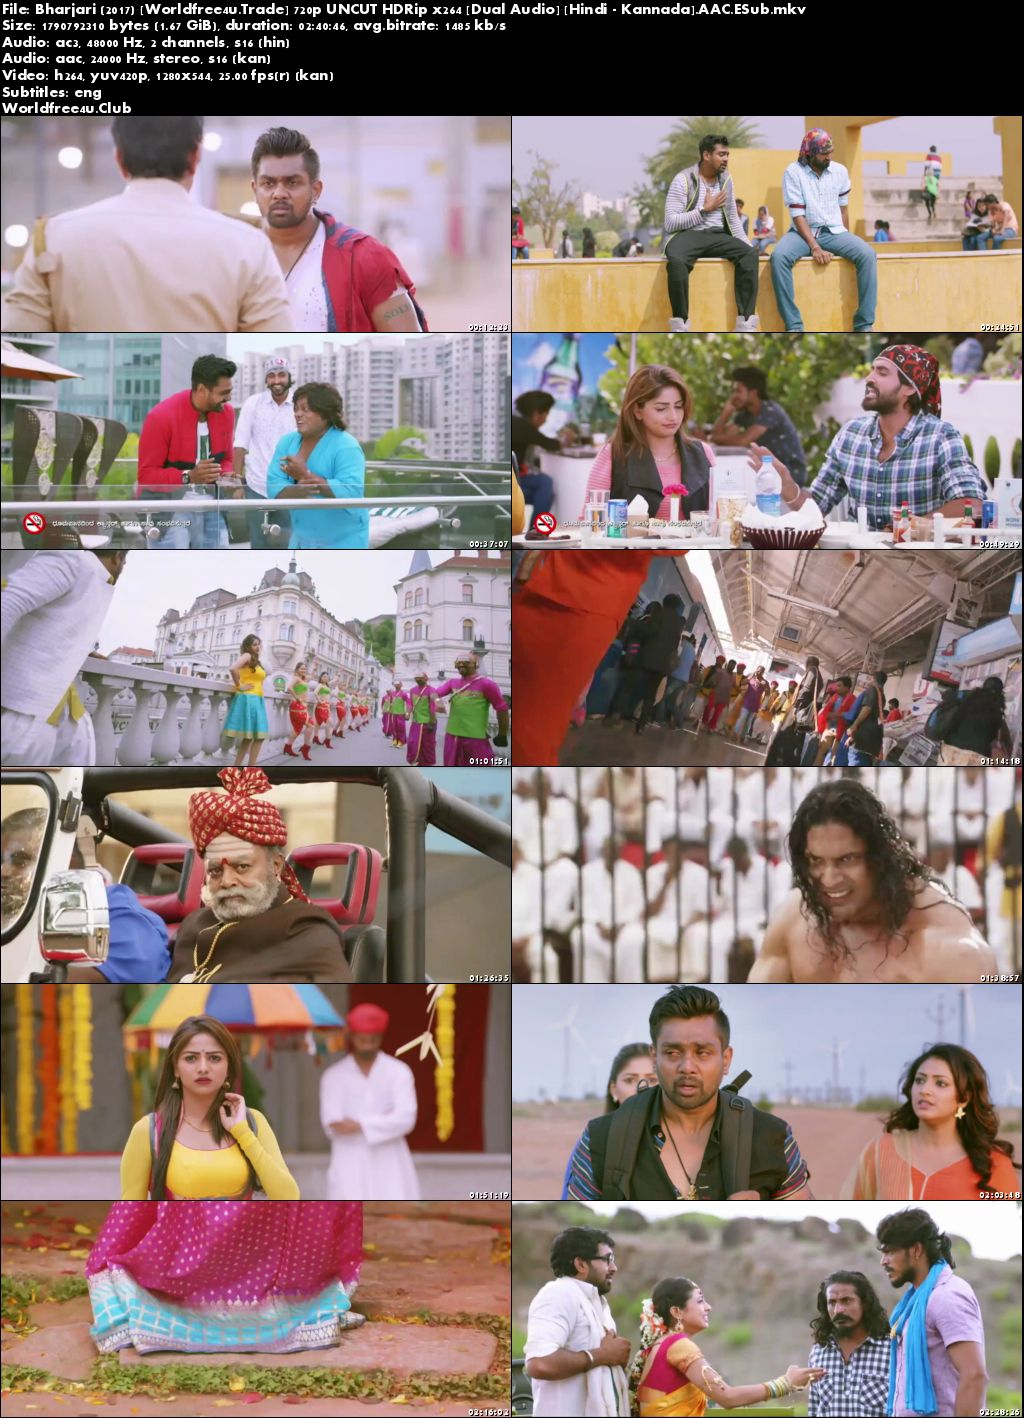 Screen Shoot of Bharjari 2017 Hindi Dubbed Movie Download HDRip 720p Dual Audio UNCUT worldfree4u ,extramovies